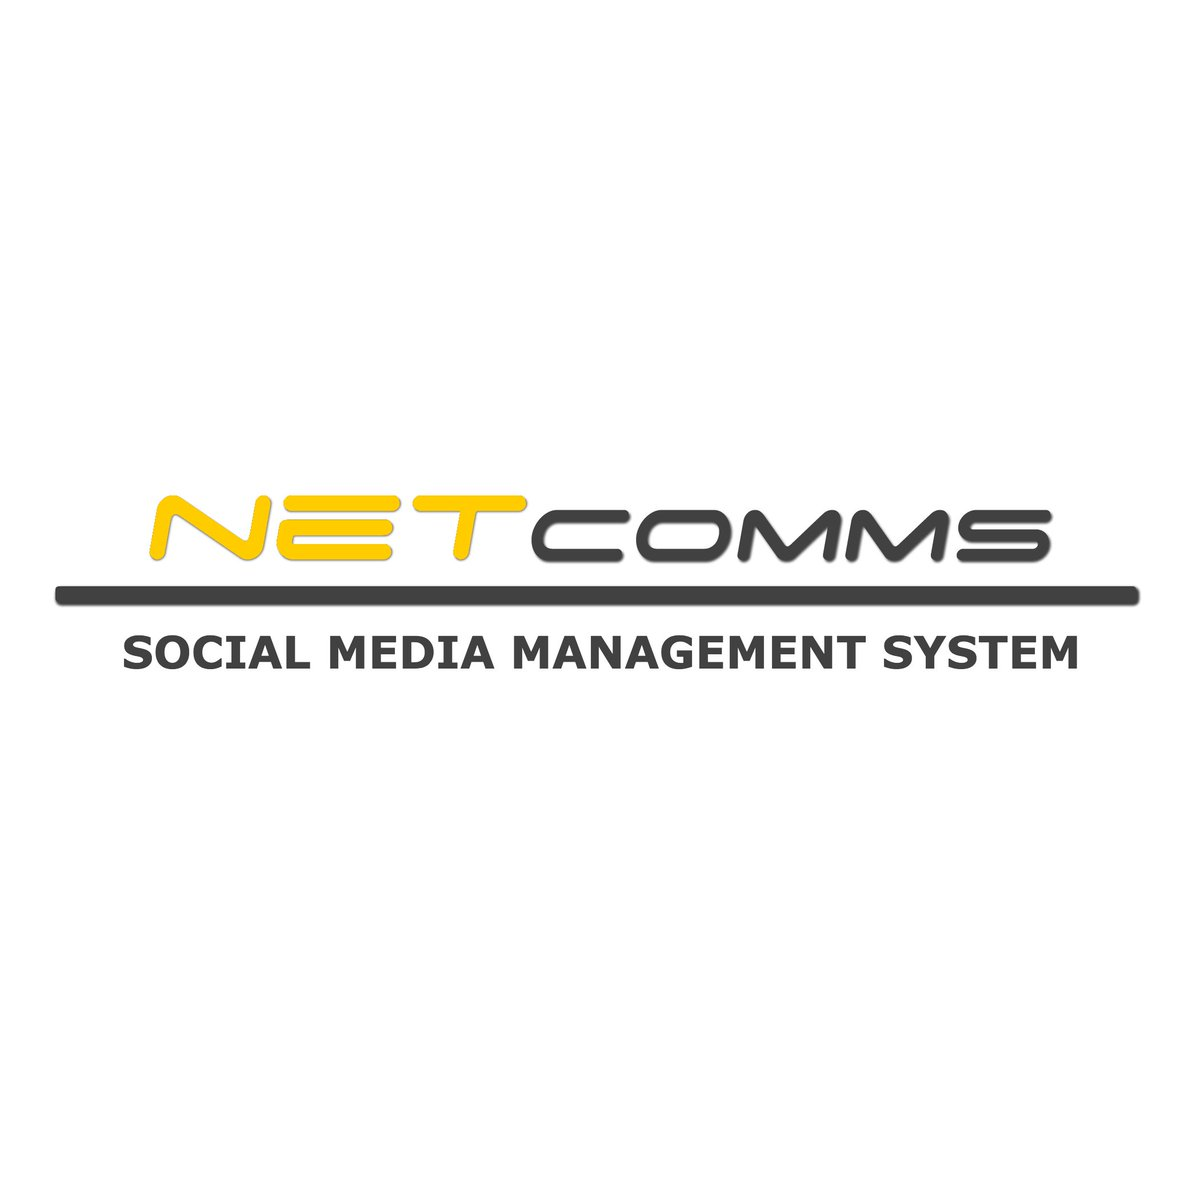 #onlinemarketing -  Post to multiple social media networks all at the same time with a single  https://www. mynetcomms.com  &nbsp;  <br>http://pic.twitter.com/ygtb47n0WJ